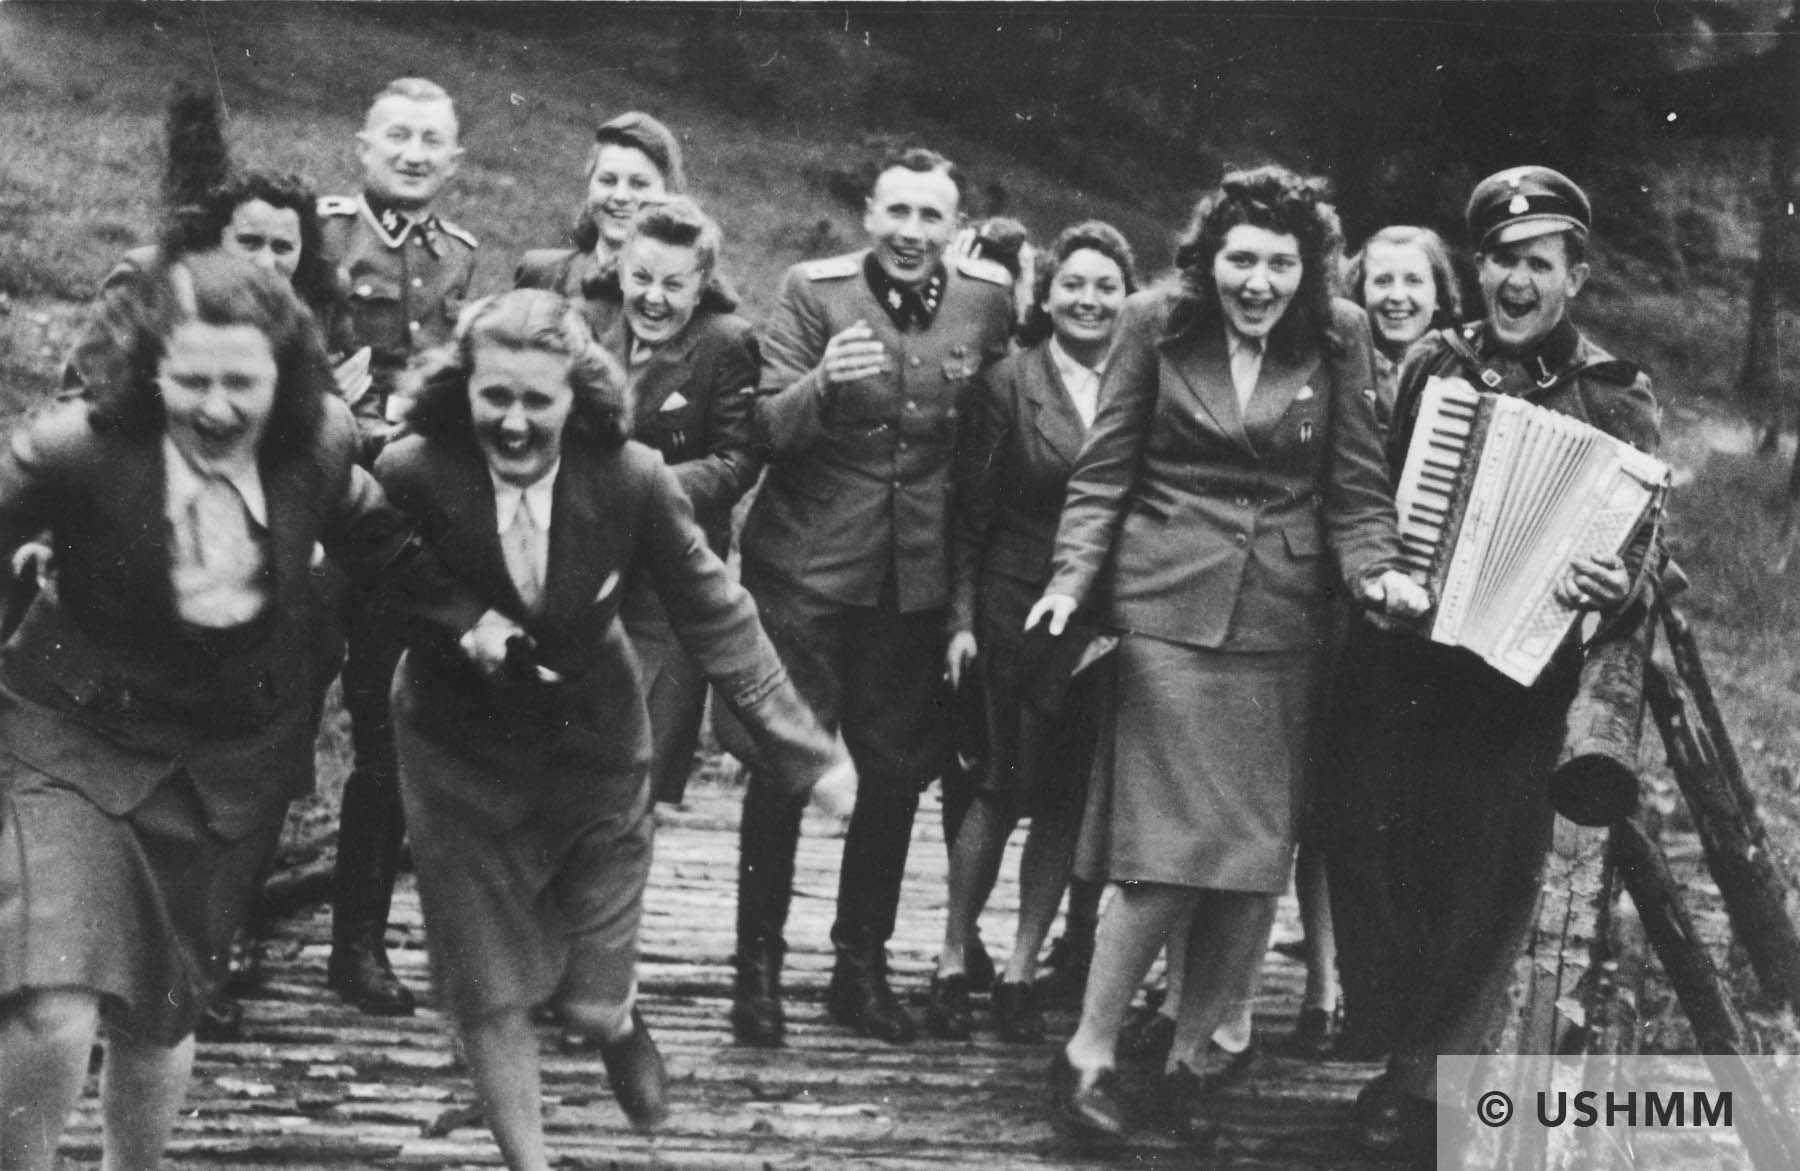 Nazi officers and female auxiliaries (Helferinnen) run down a wooden bridge in Solahütte. USHMM 34586